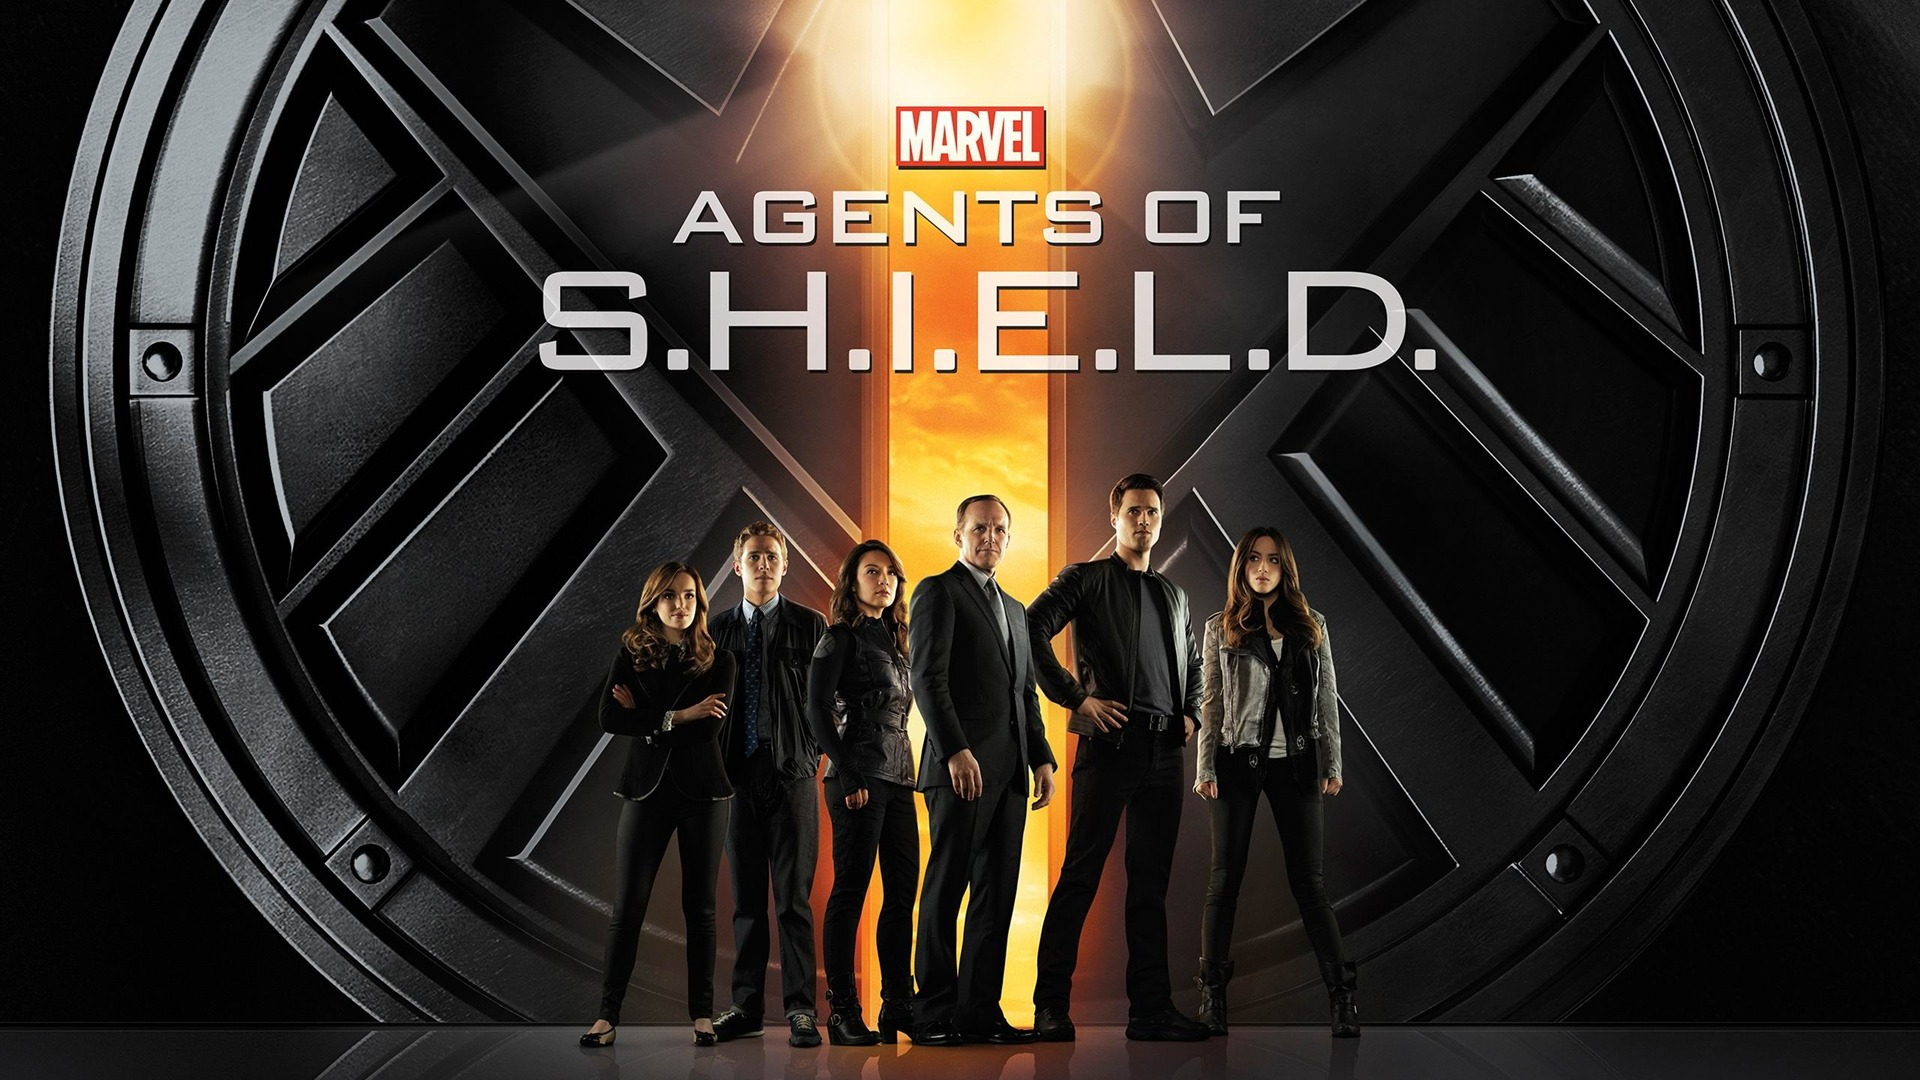 Agents of shield 1920x1080